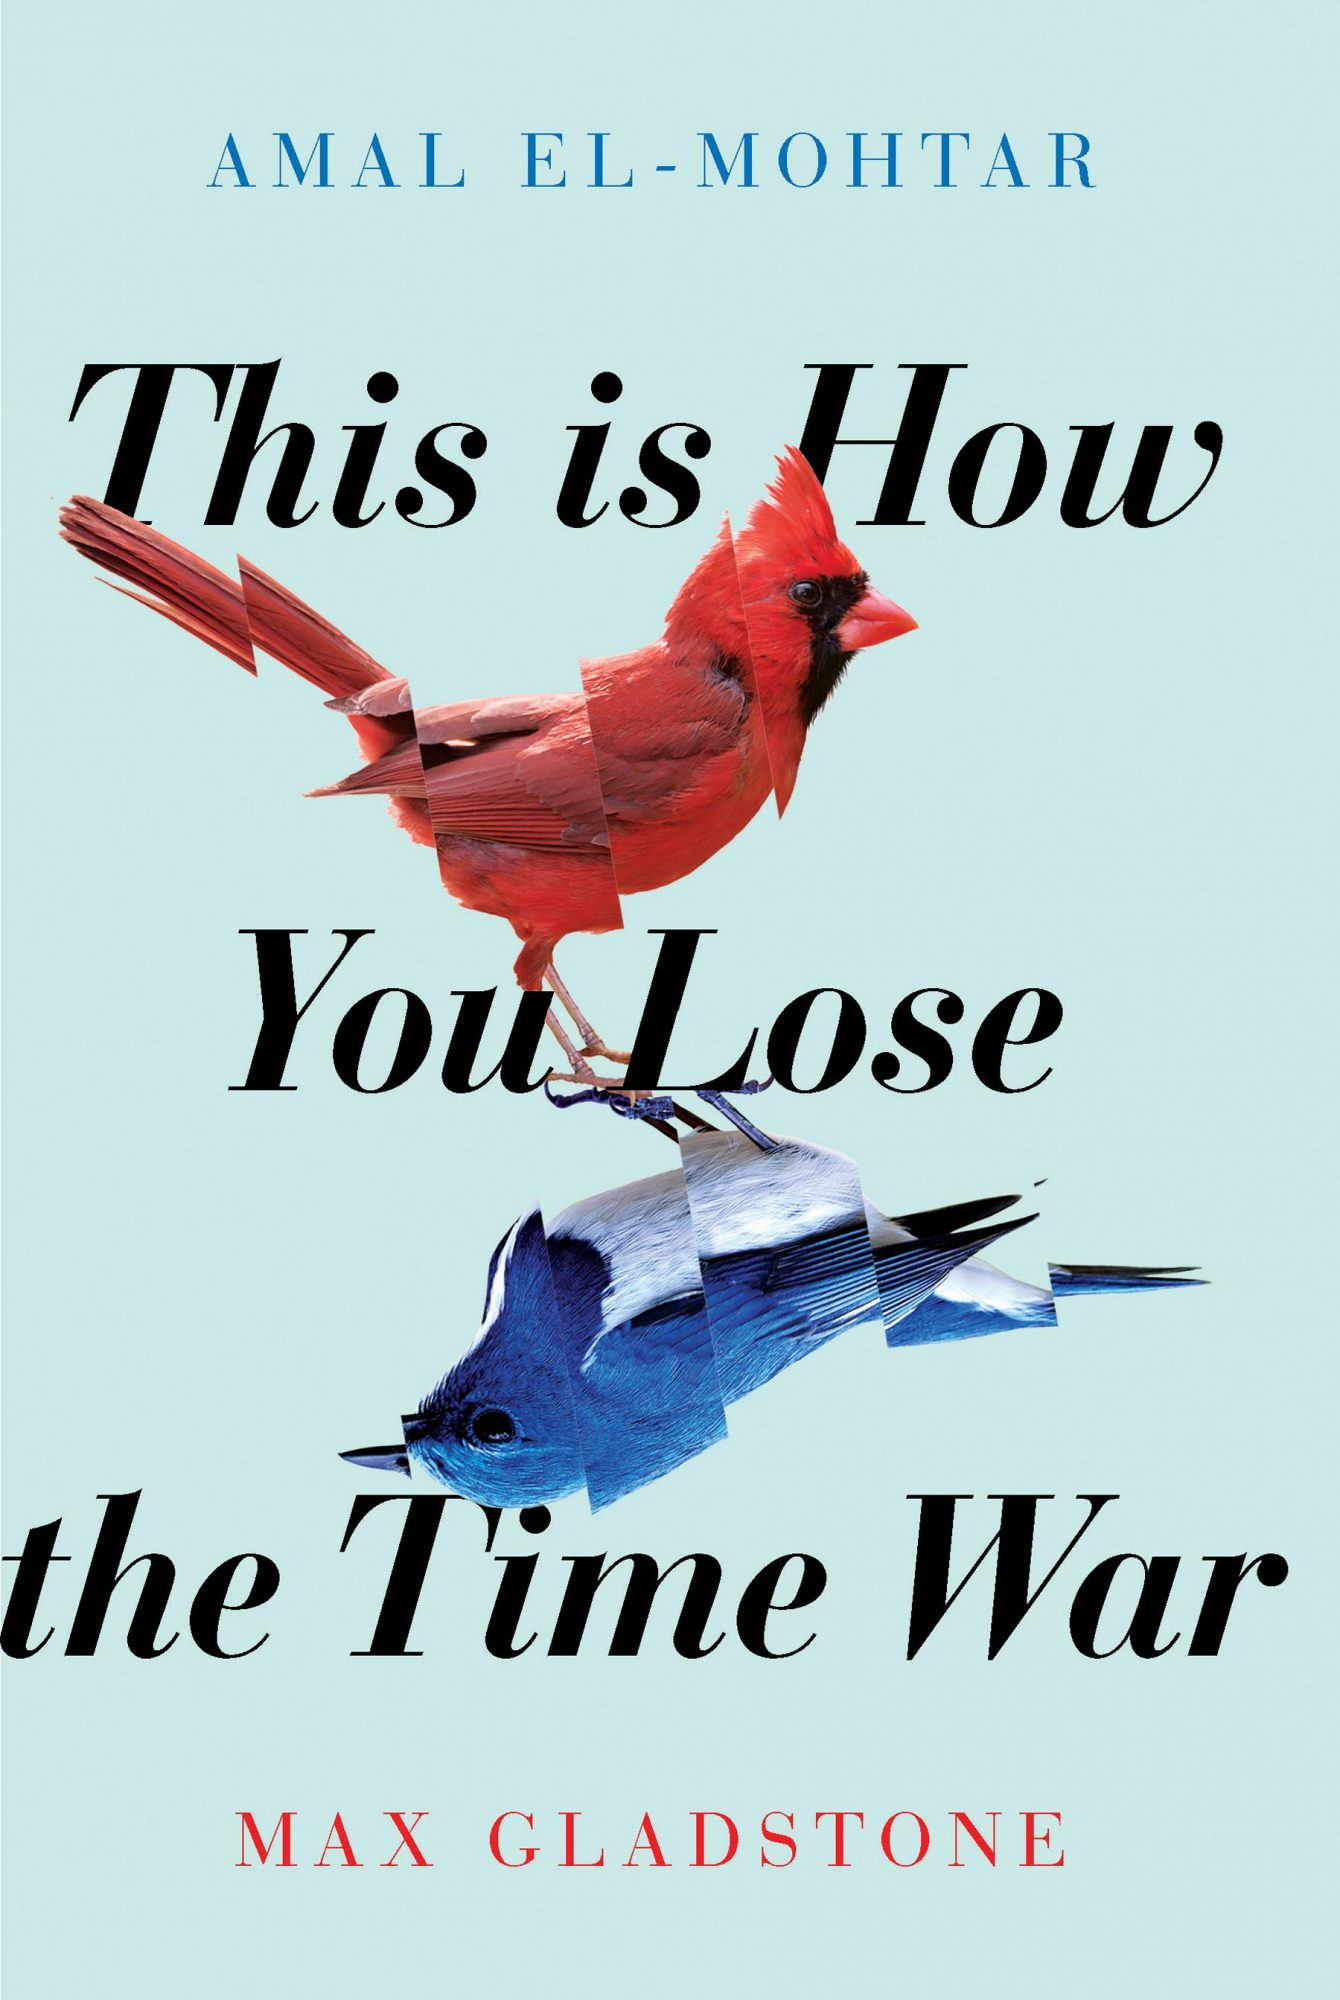 This Is How You Lose The Time War (2019)Max Gladstone